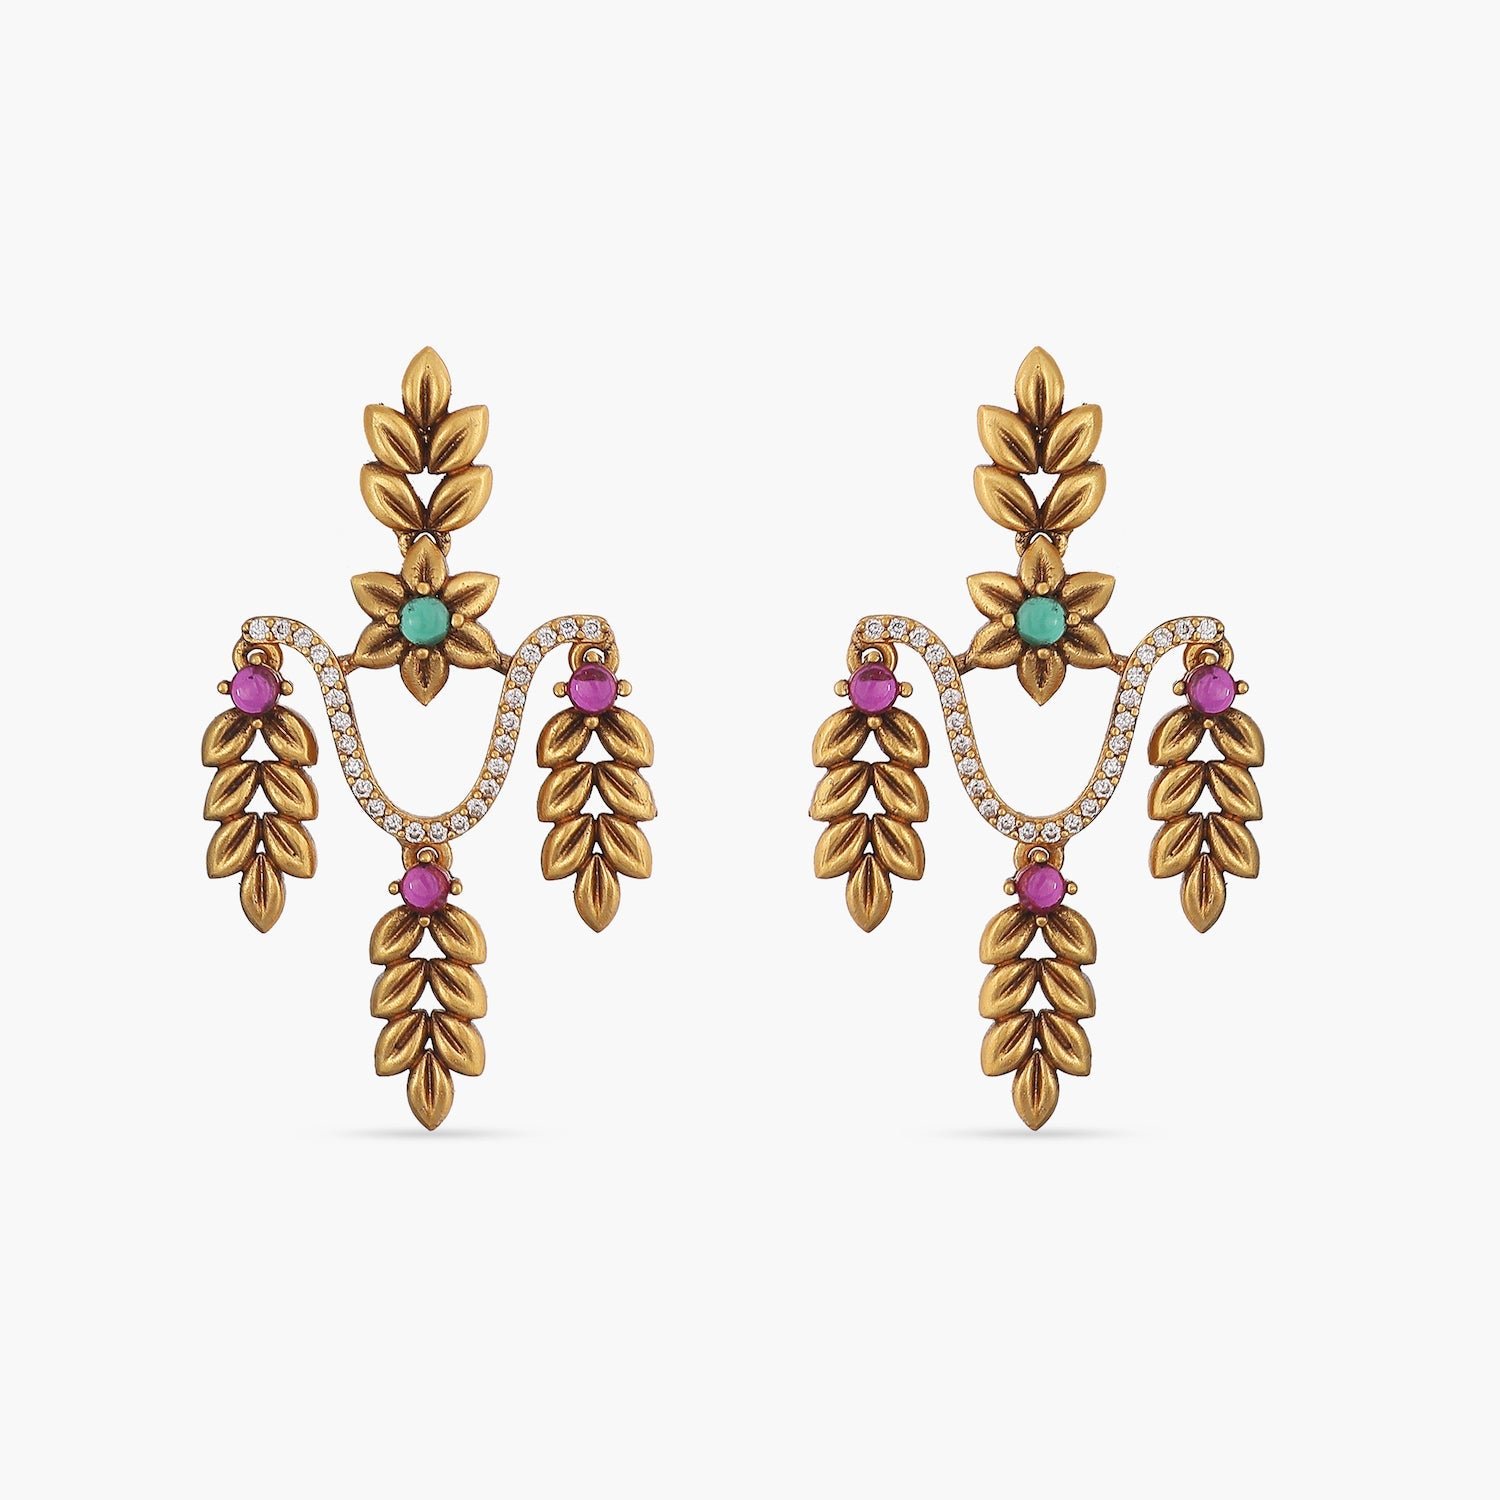 Olivia Antique Earrings